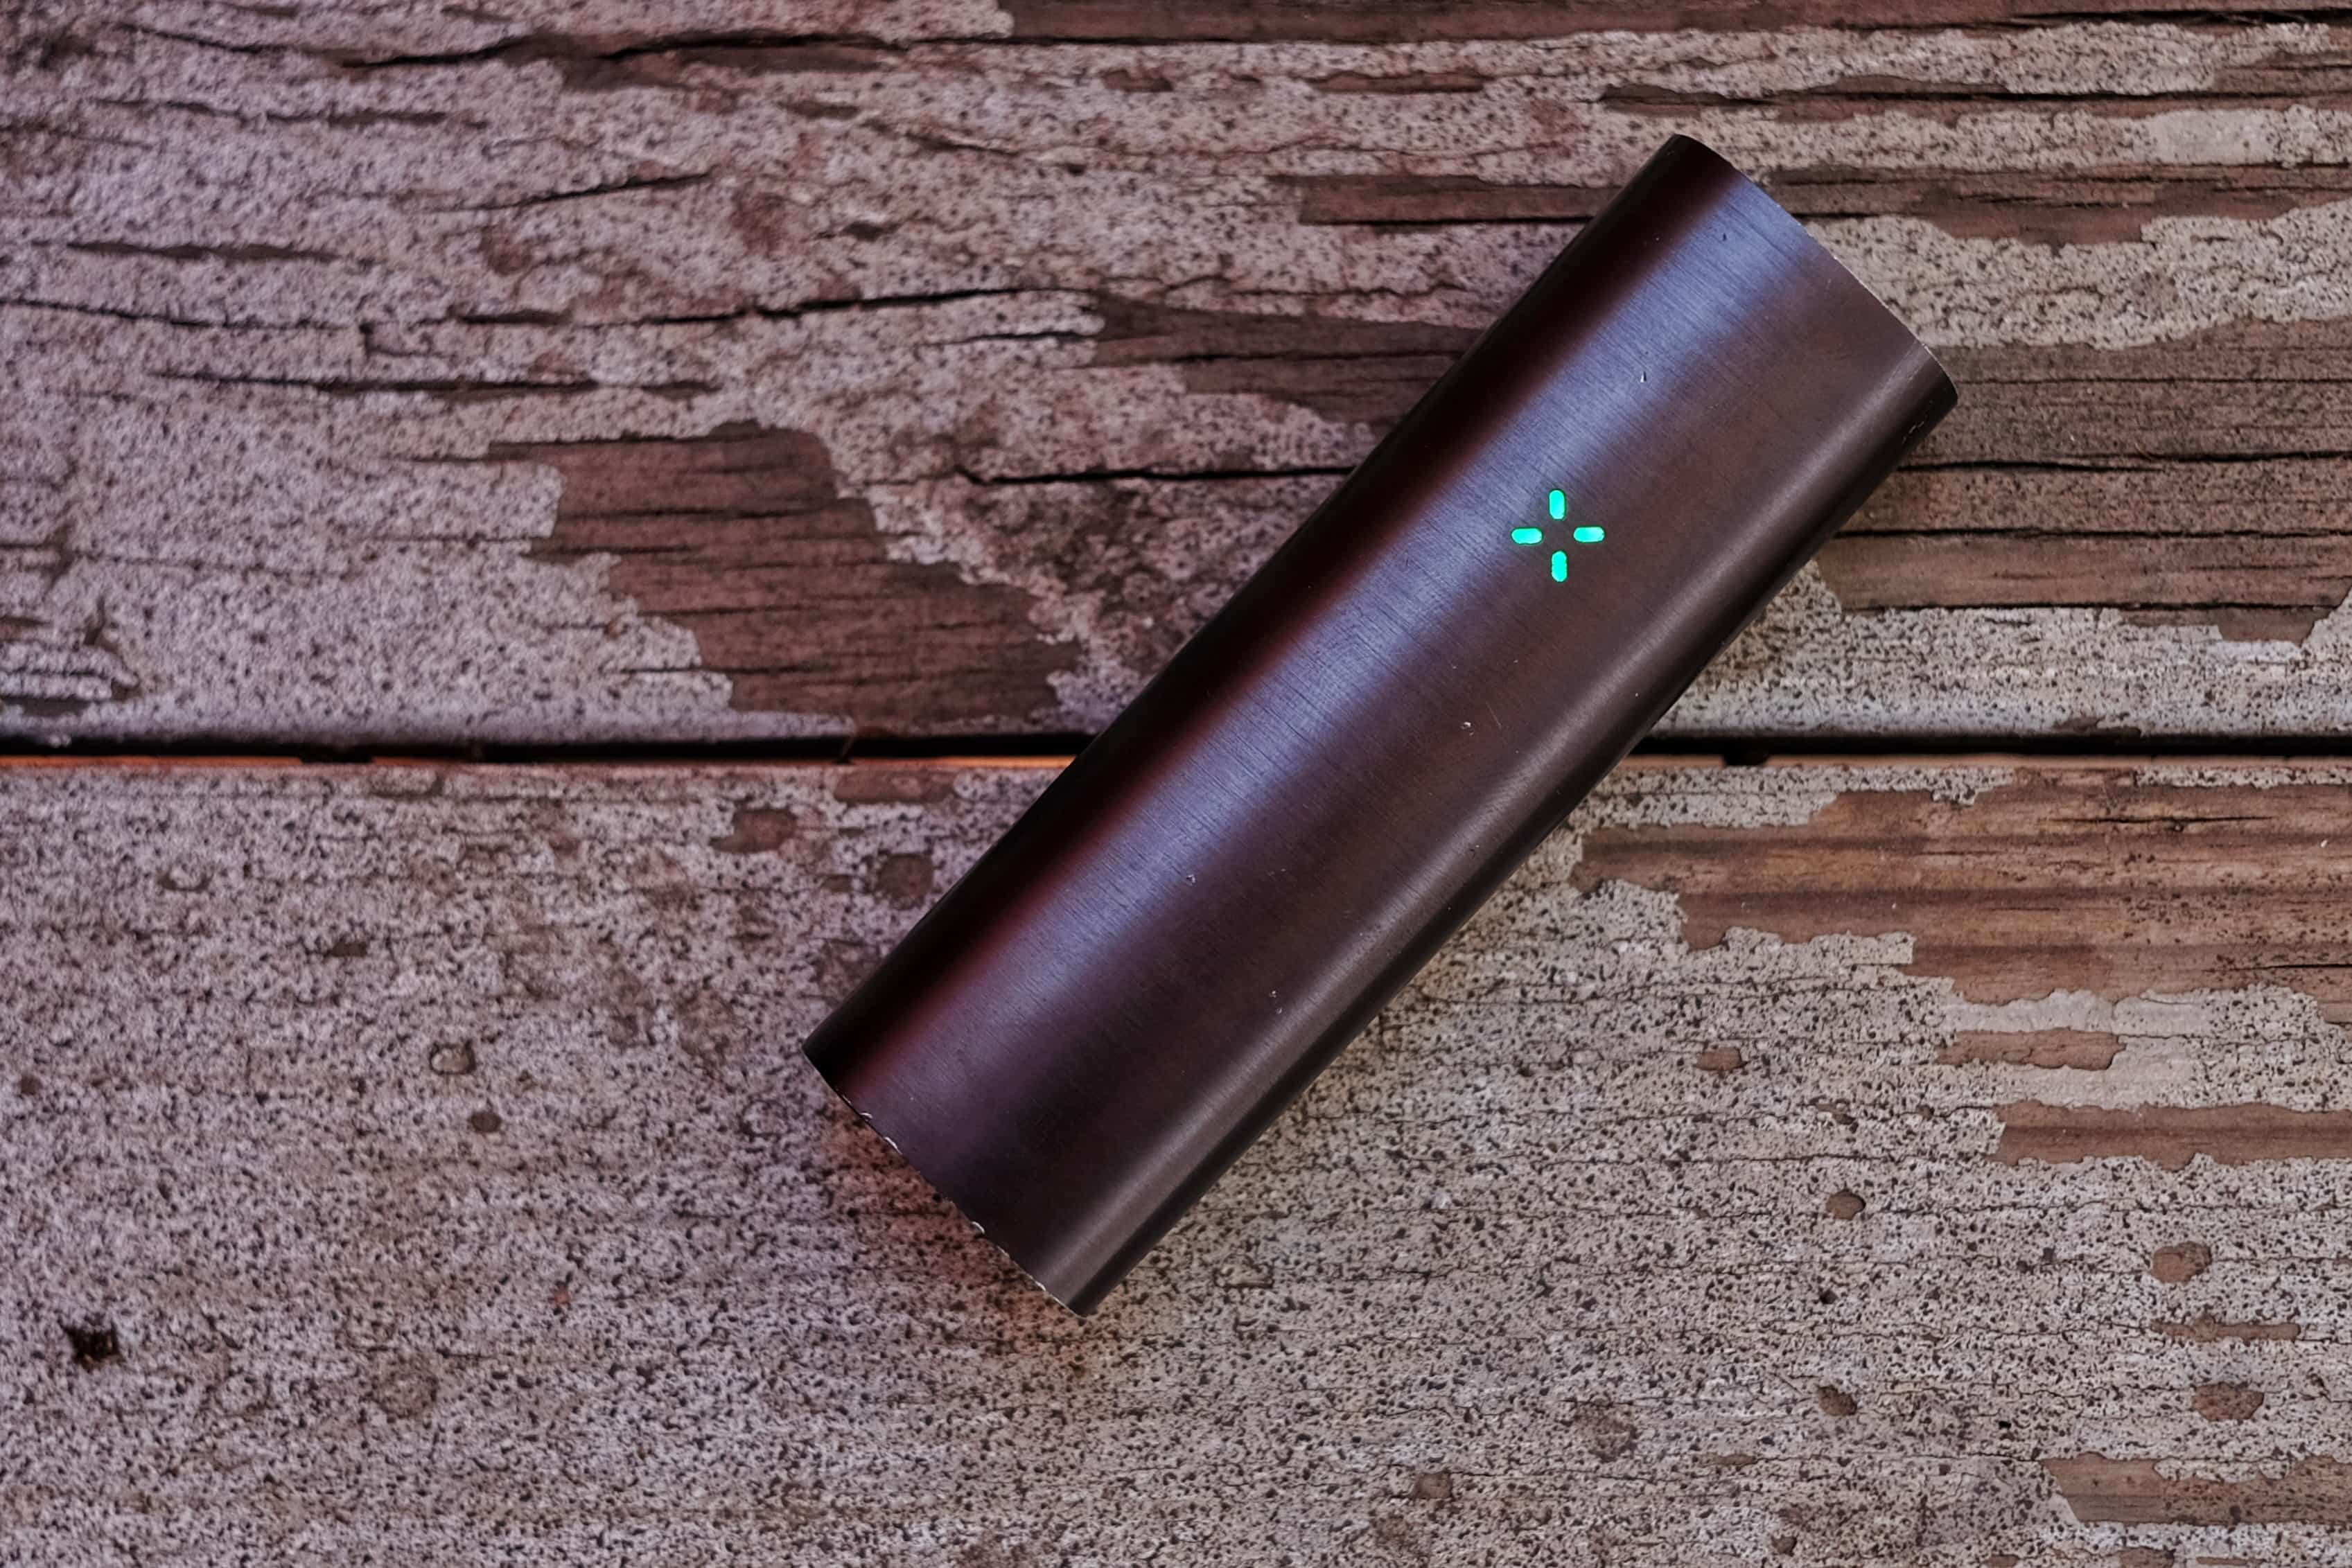 The Pax 2 is so simple any toker can use it.